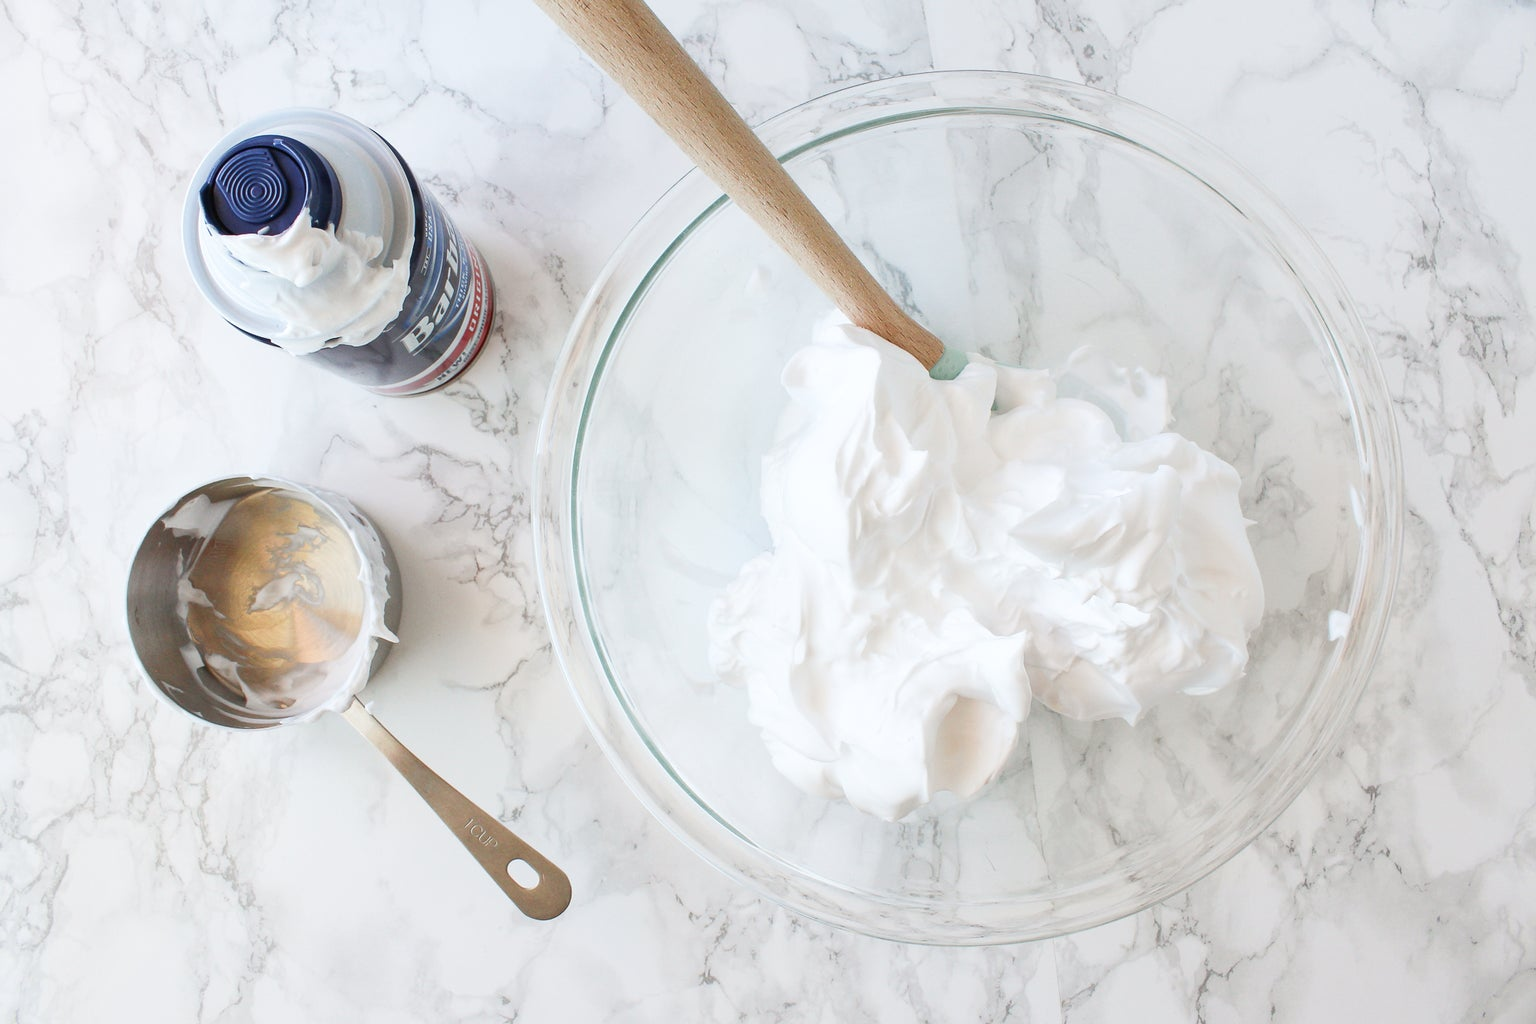 Measure Out 3 Cups of Shaving Cream